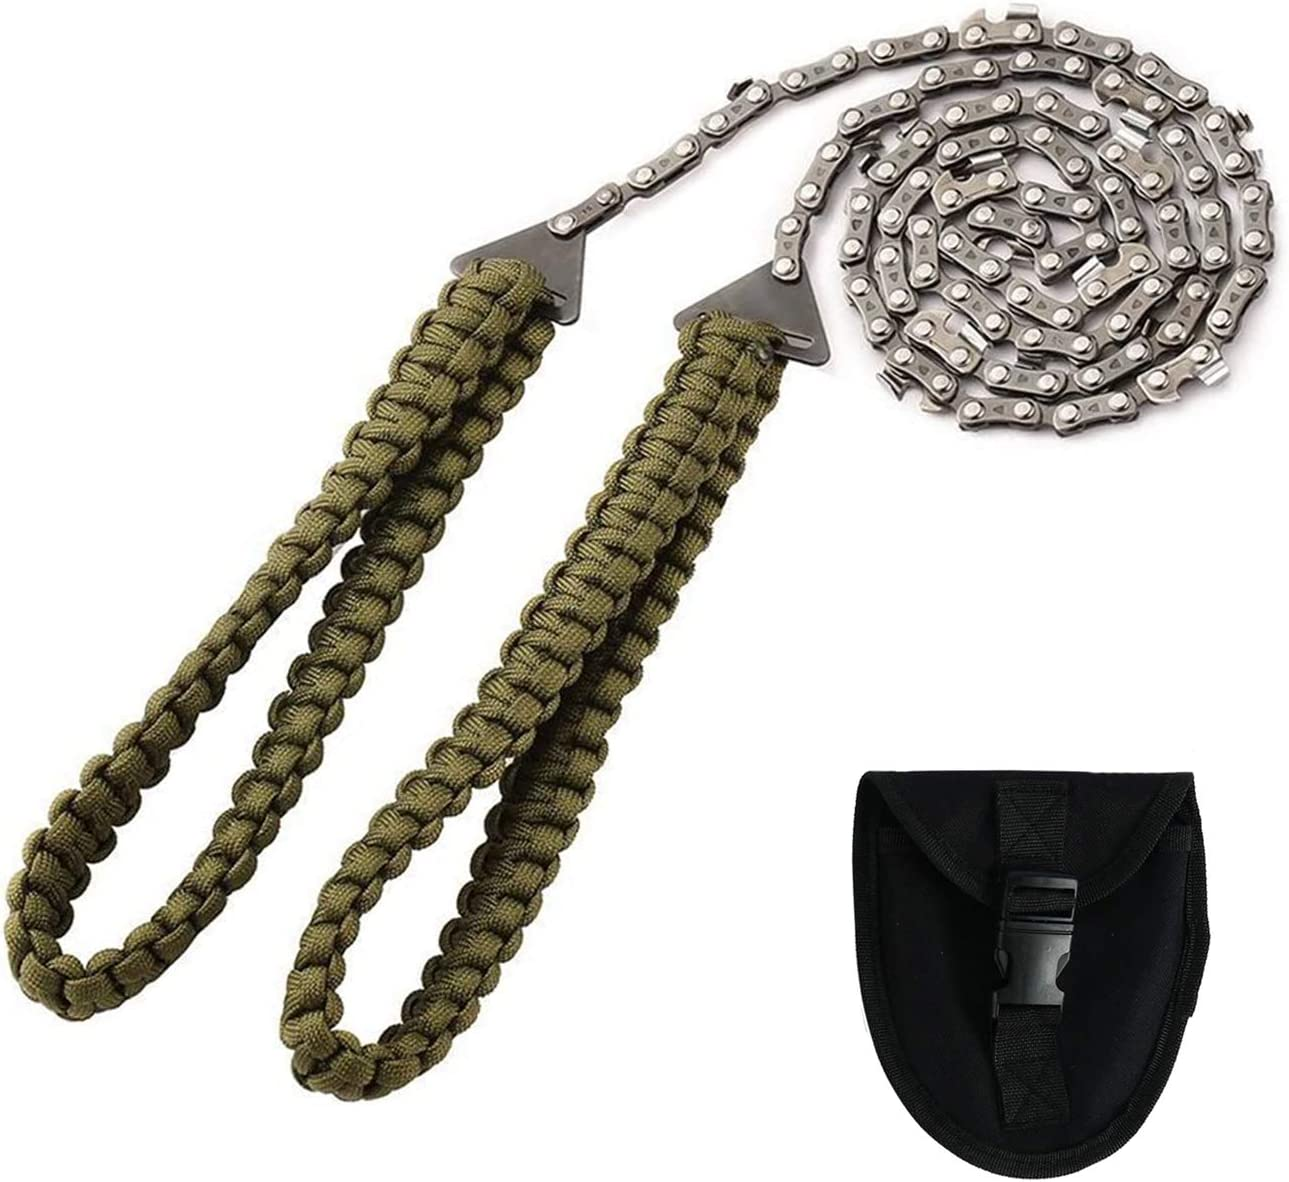 Pocket Chainsaw with Paracord Handle Emergency Outdoor Survival Gear Folding Chain Hand Saw with Carry Pouch for Camping, Hunting, Tree Cutting, Hiking, Backpacking (36inch-16teeth)